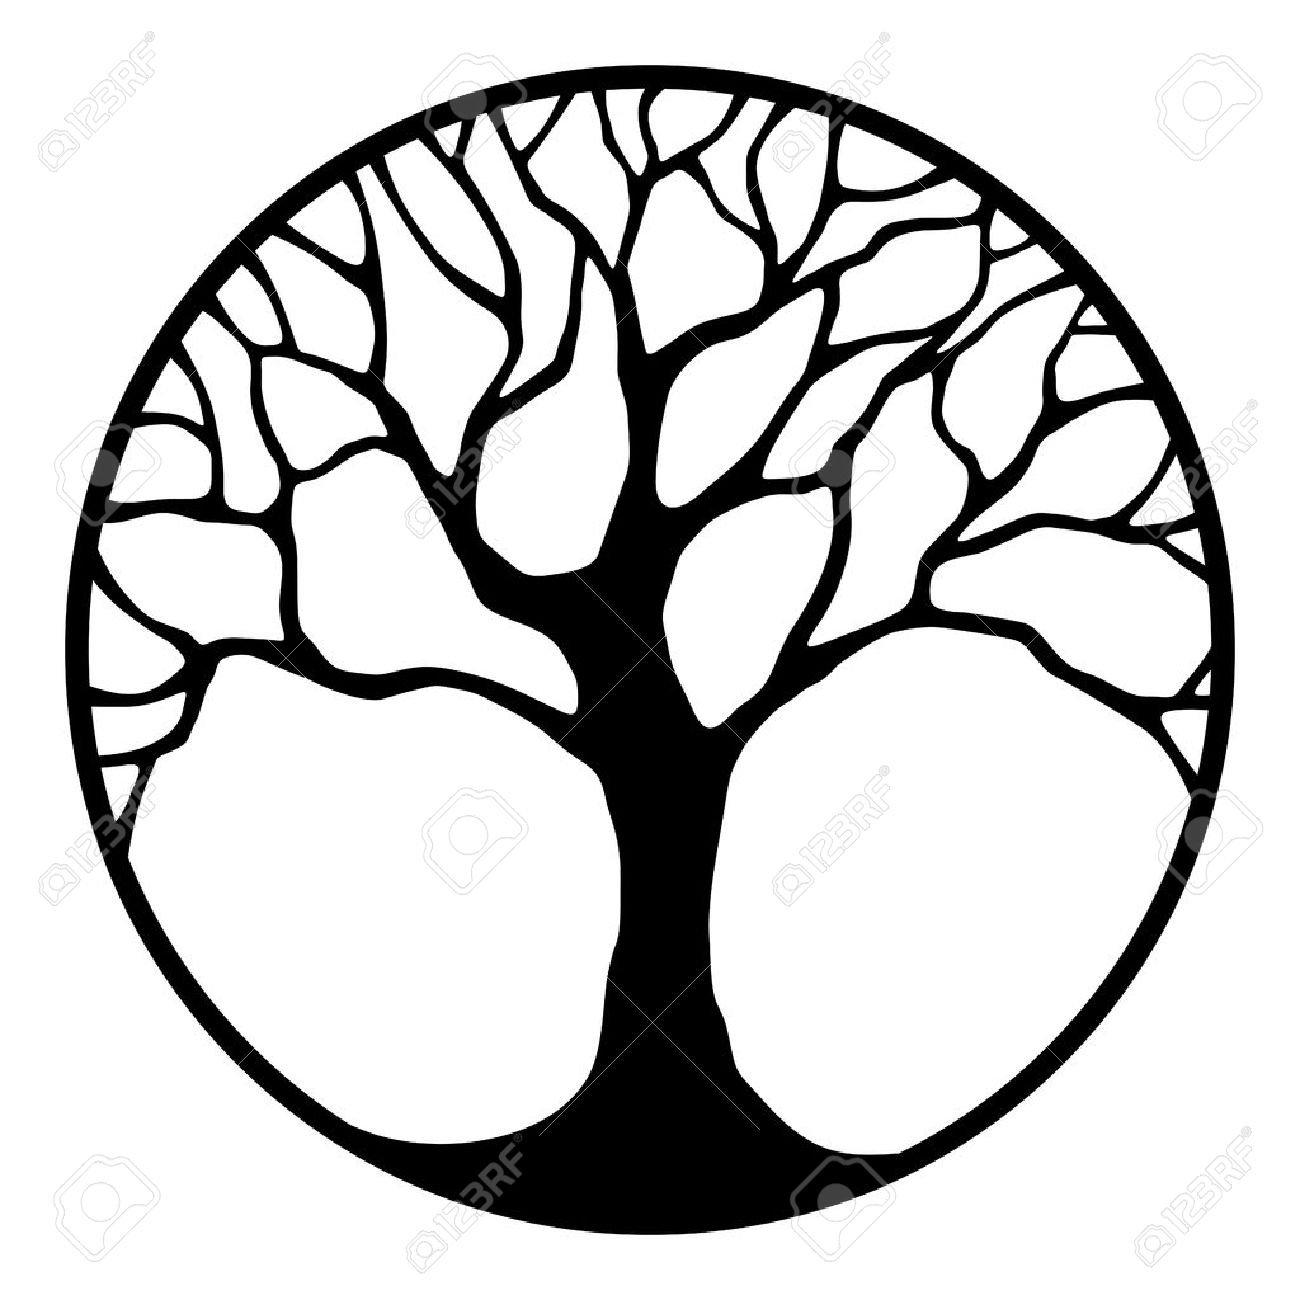 Vector black silhouette of a tree in a circle isolated on a white background. - 56884584